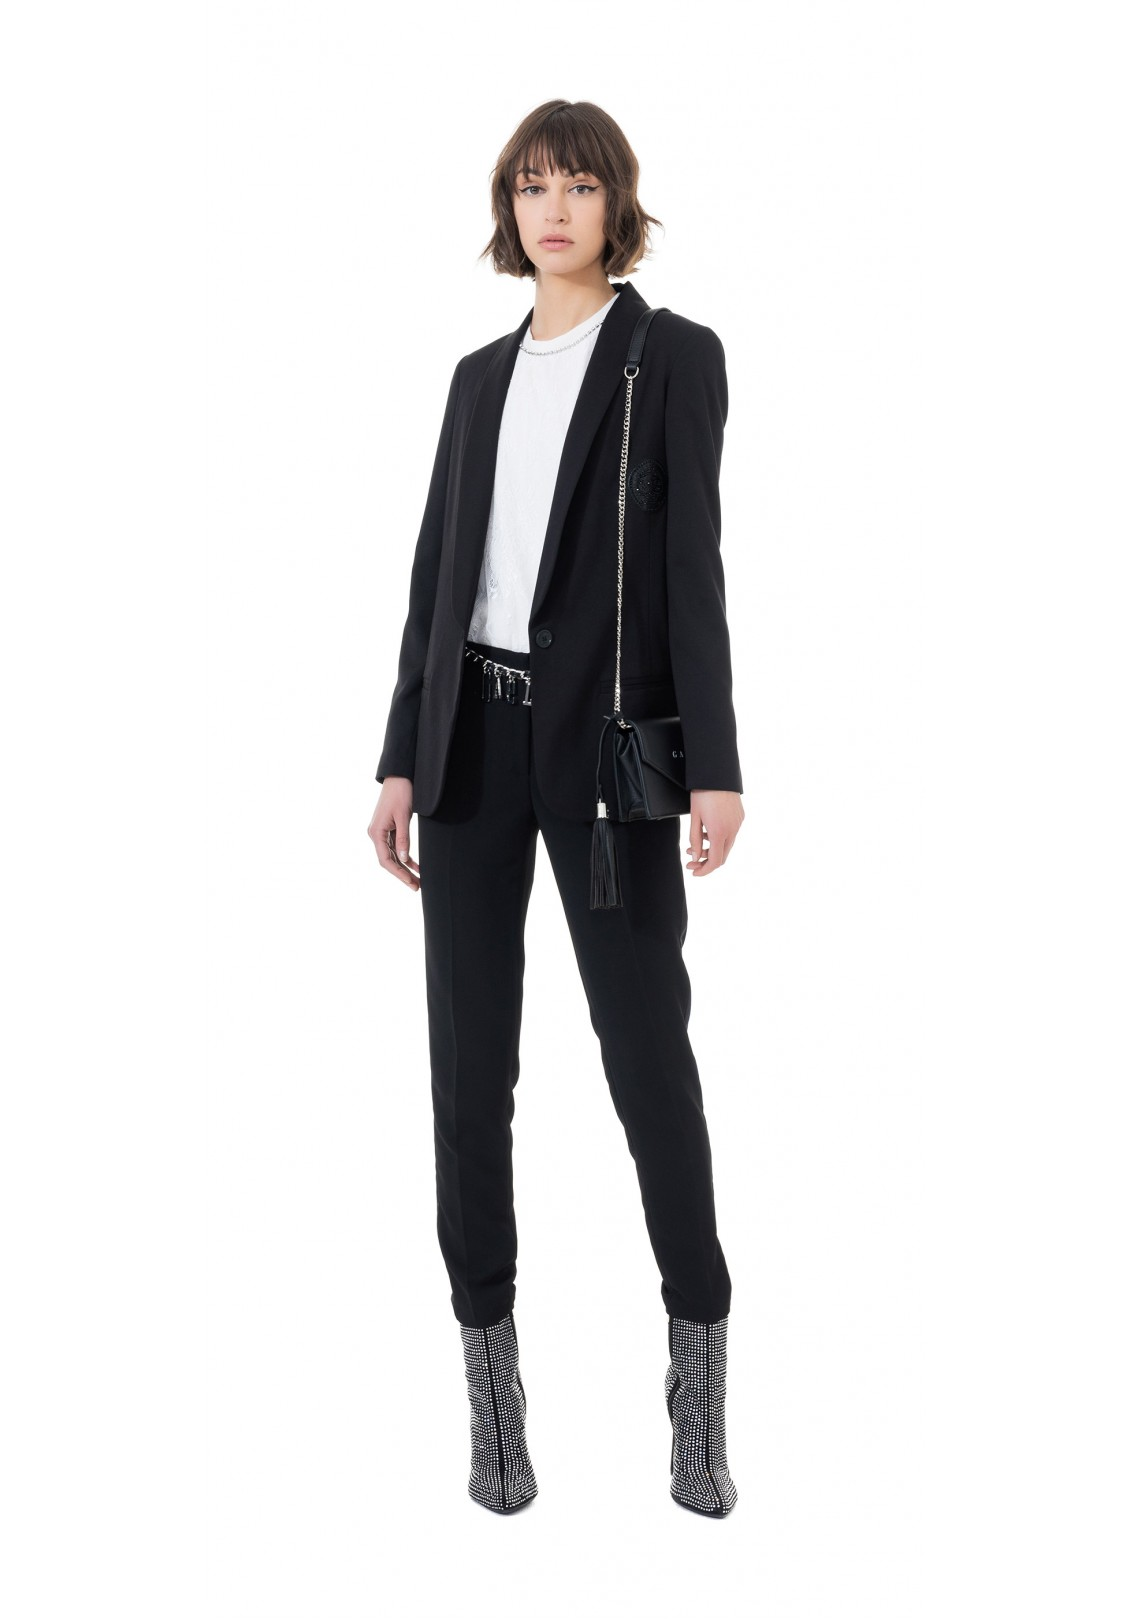 TROUSER - GBD5422 - GAELLE PARIS